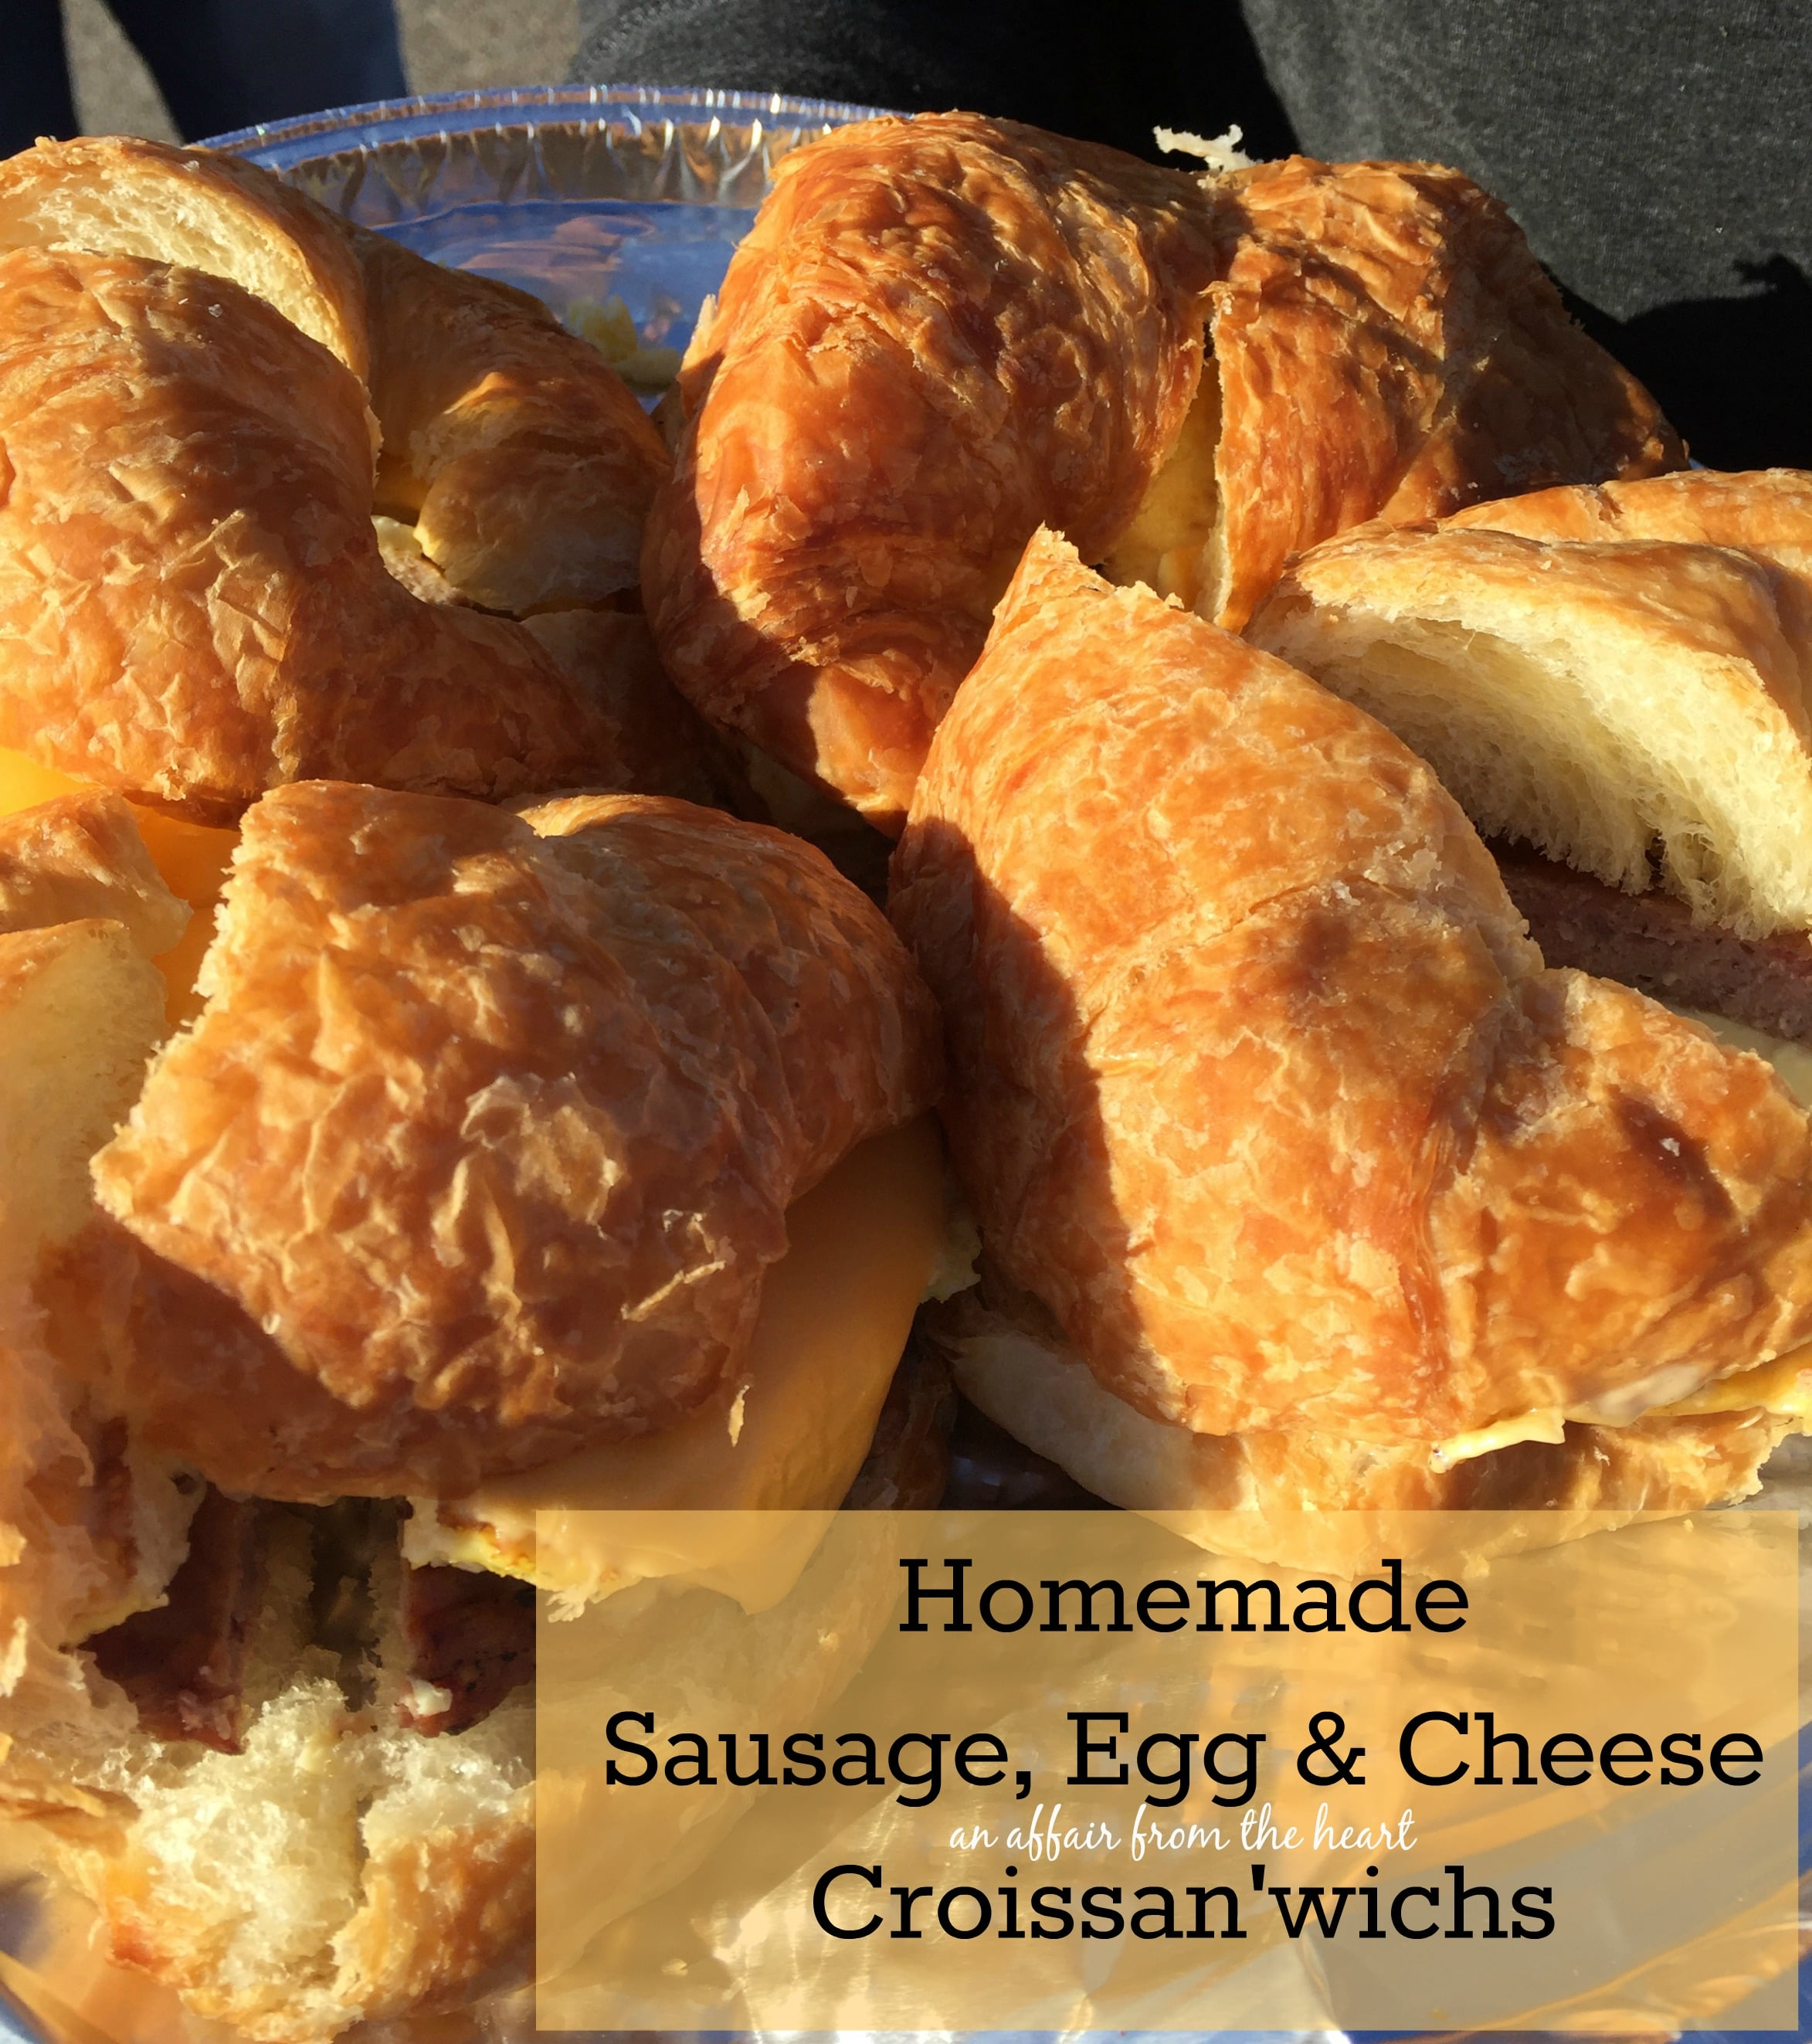 Love the Homemade Sausage, Egg & Cheese Croissan'wichs from Burger ...